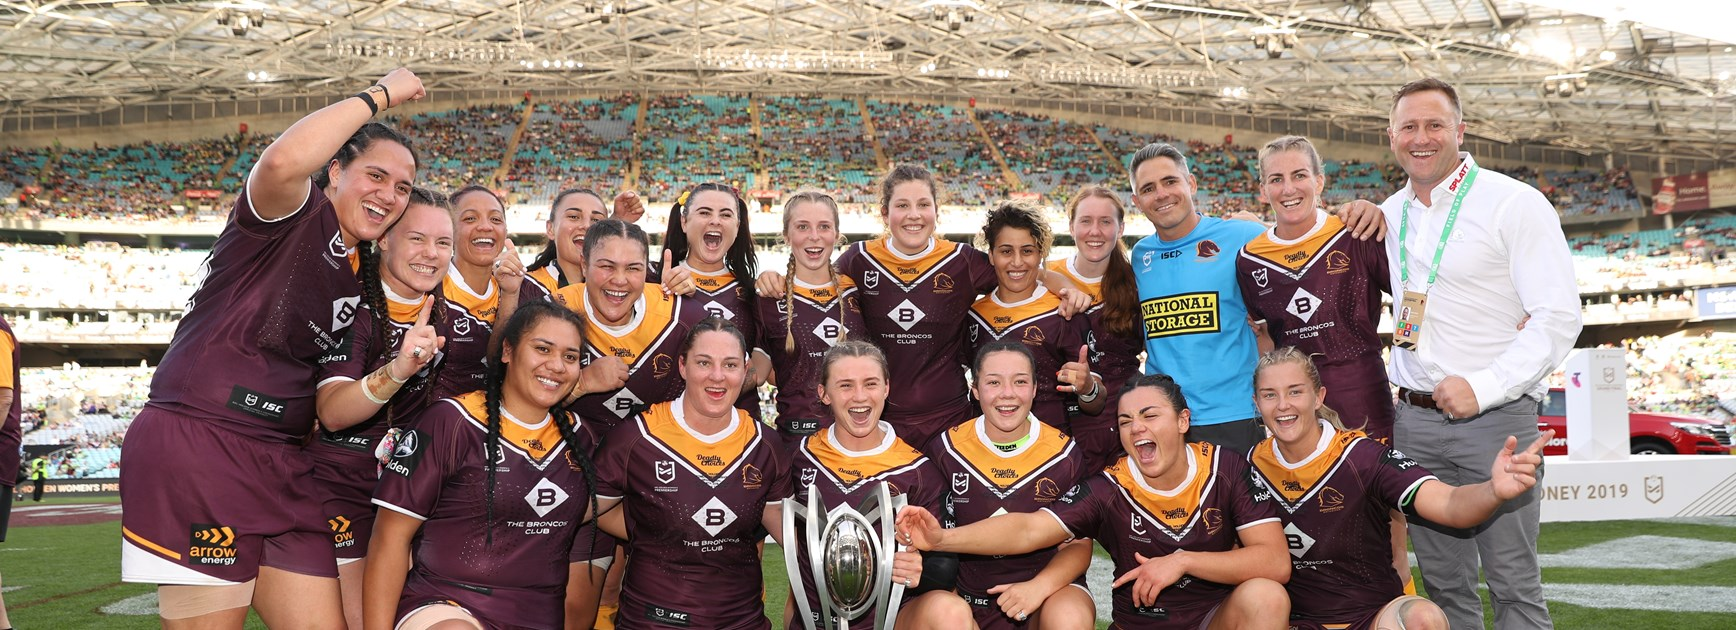 The Brisbane Broncos celebrate going back-to-back in the NRLW.